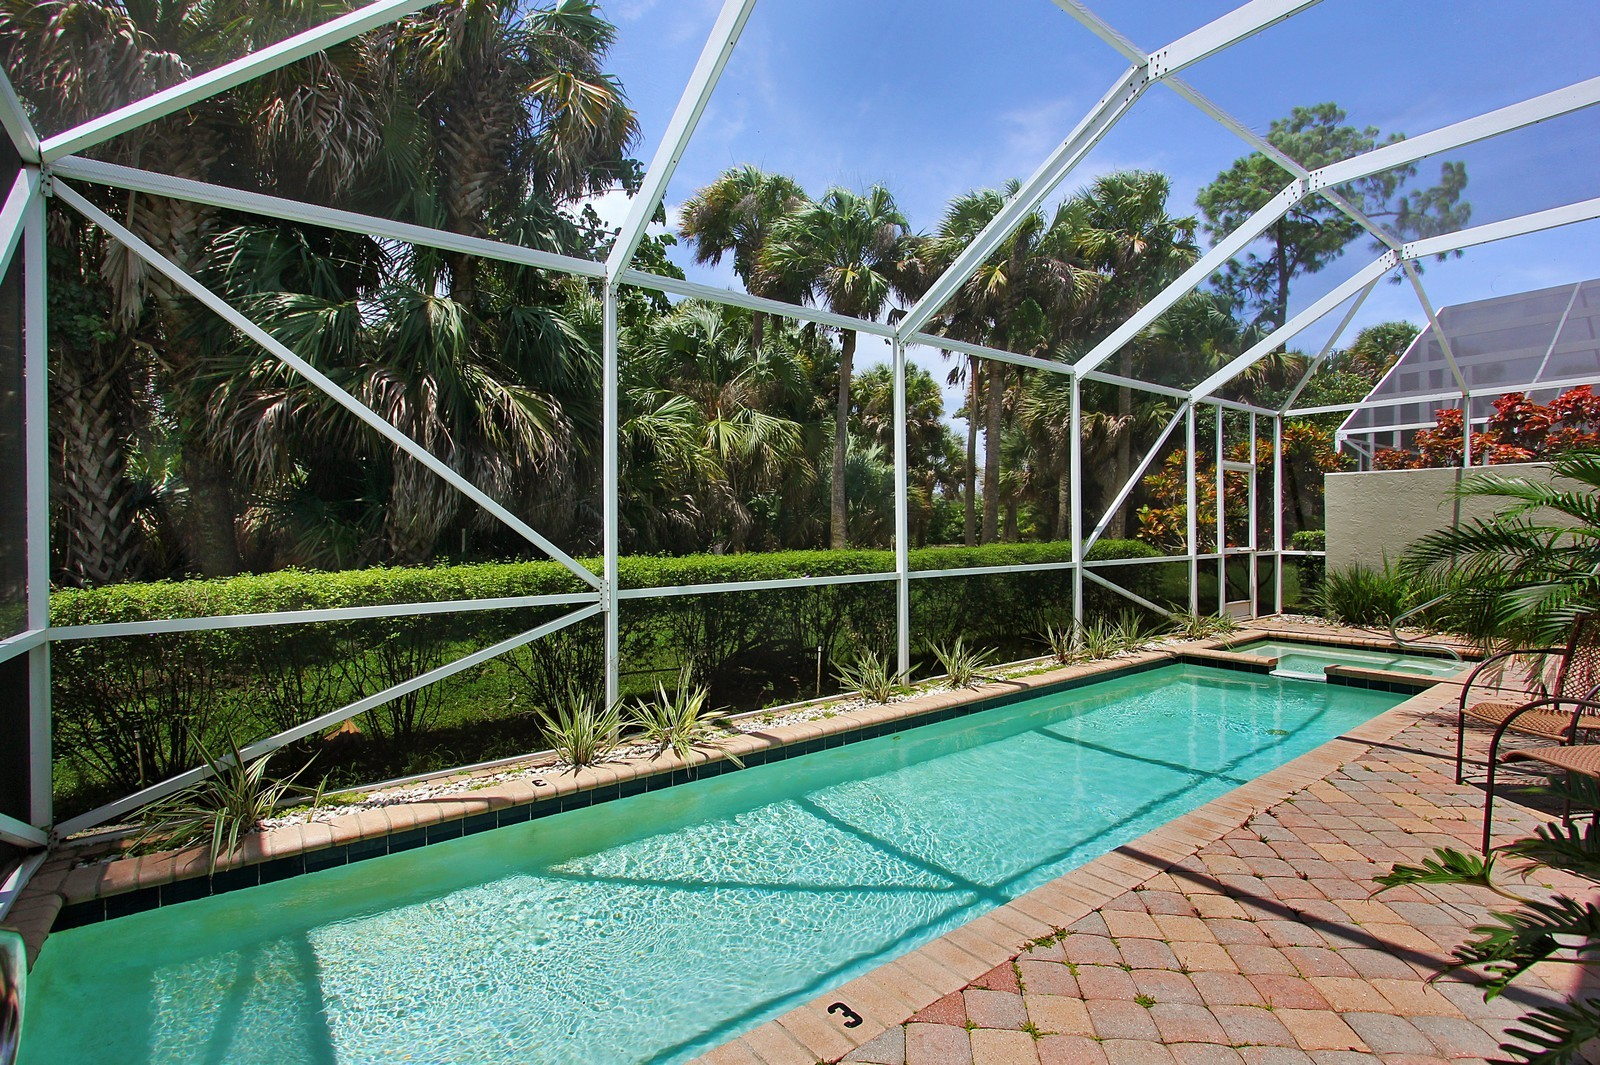 Real Estate Photography - 9107 BAYBURY Lane, West Palm Beach, FL, 33411 - Pool